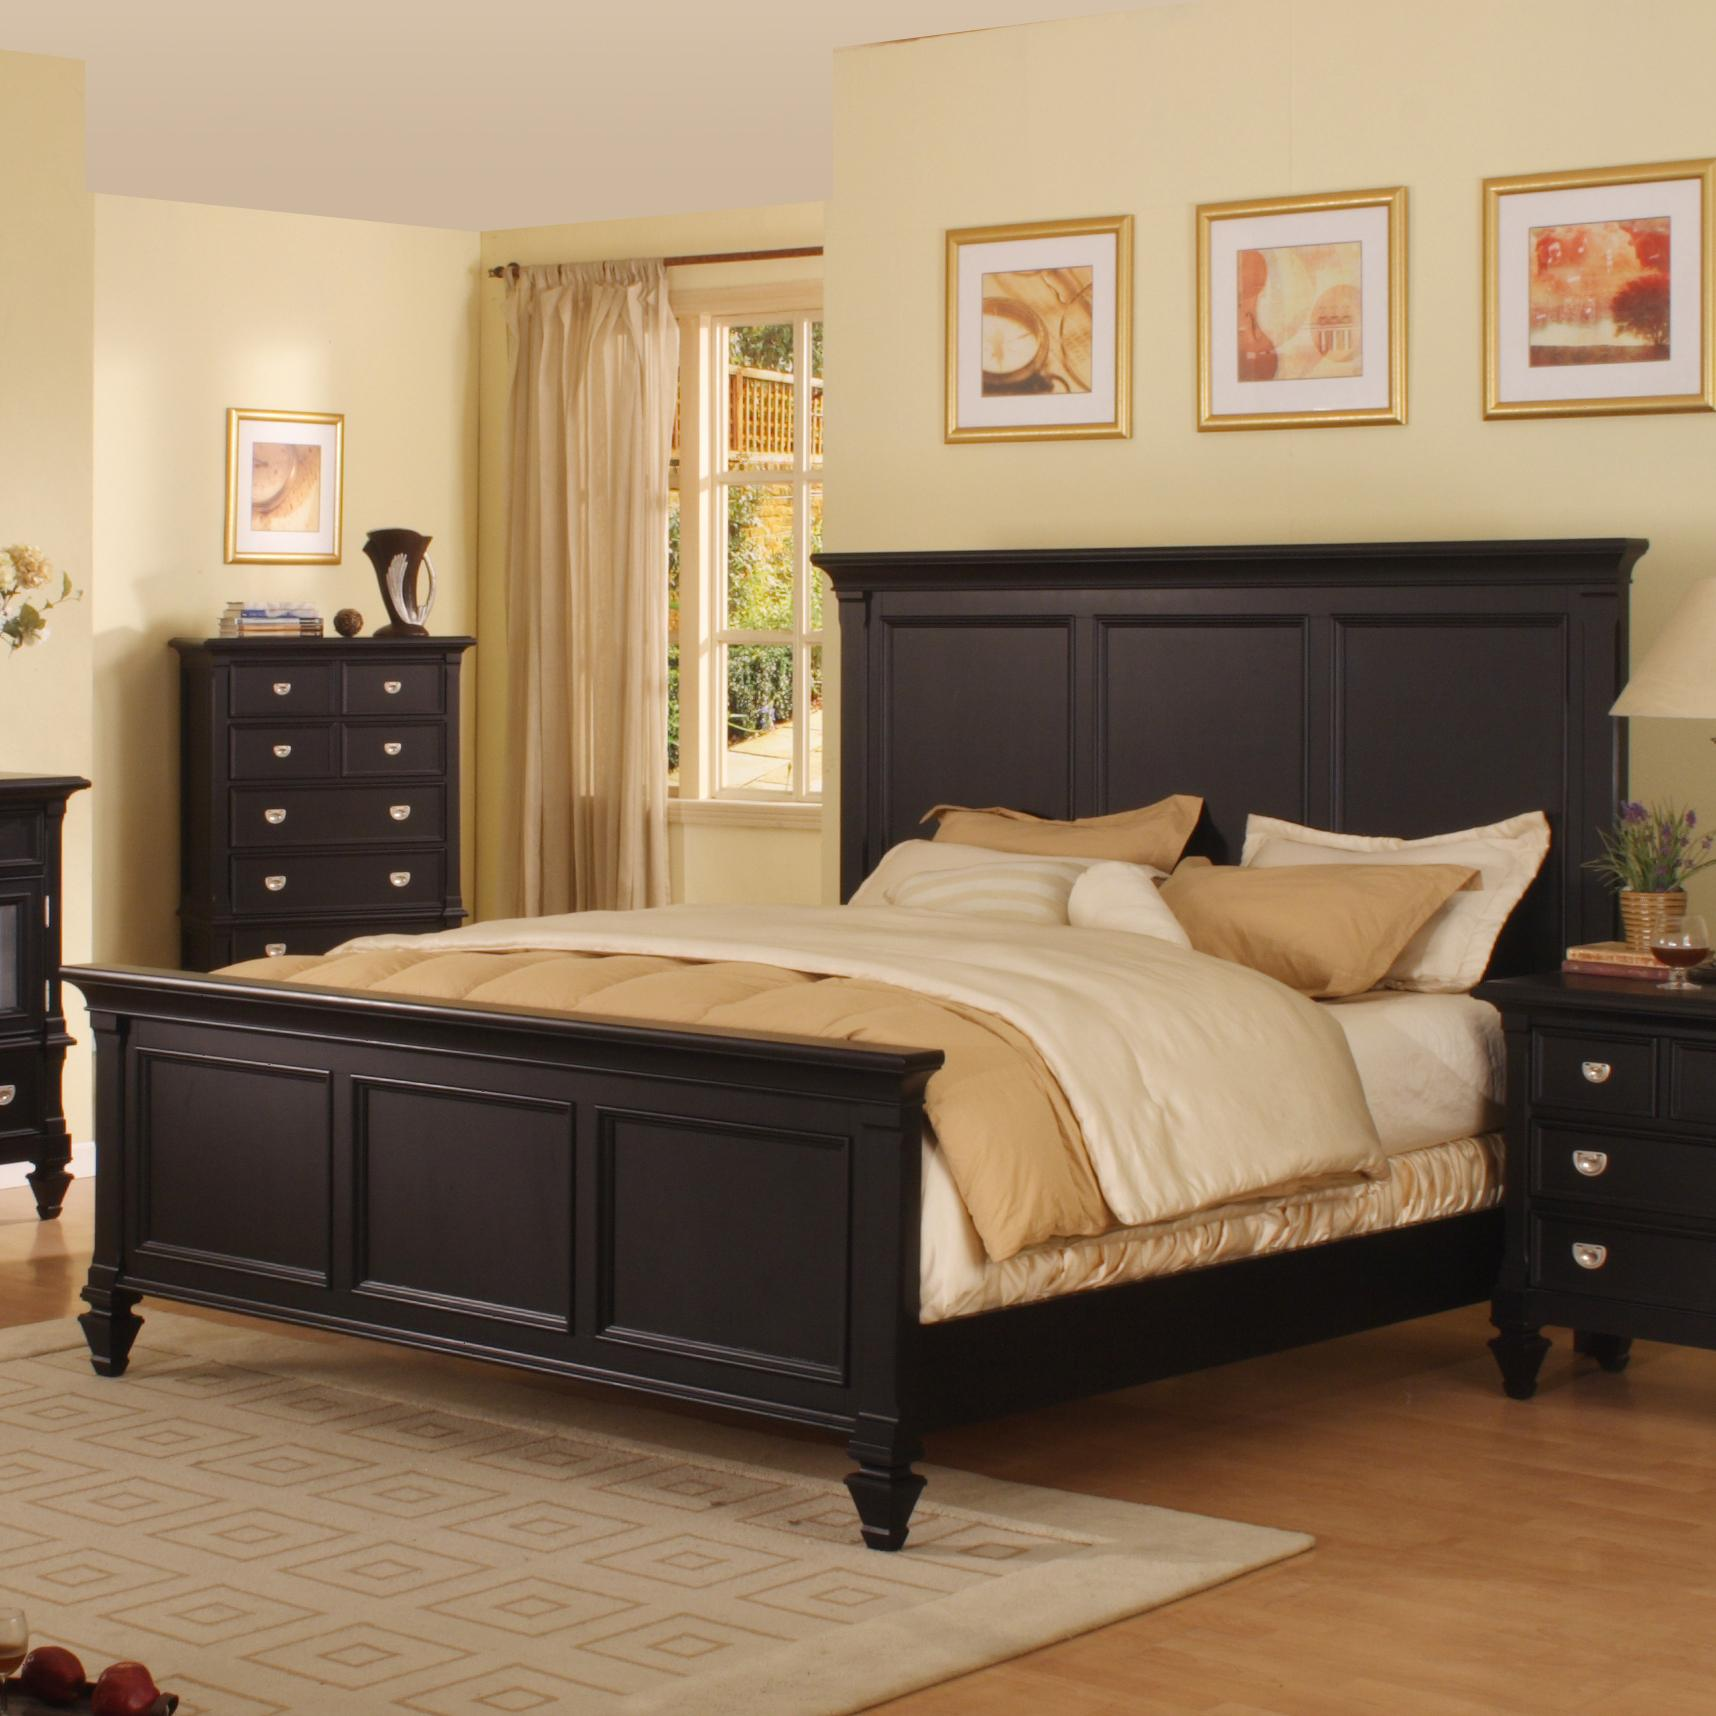 What Is A Panel Bed Surrey Queen Panel Bed Morris Home Panel Beds